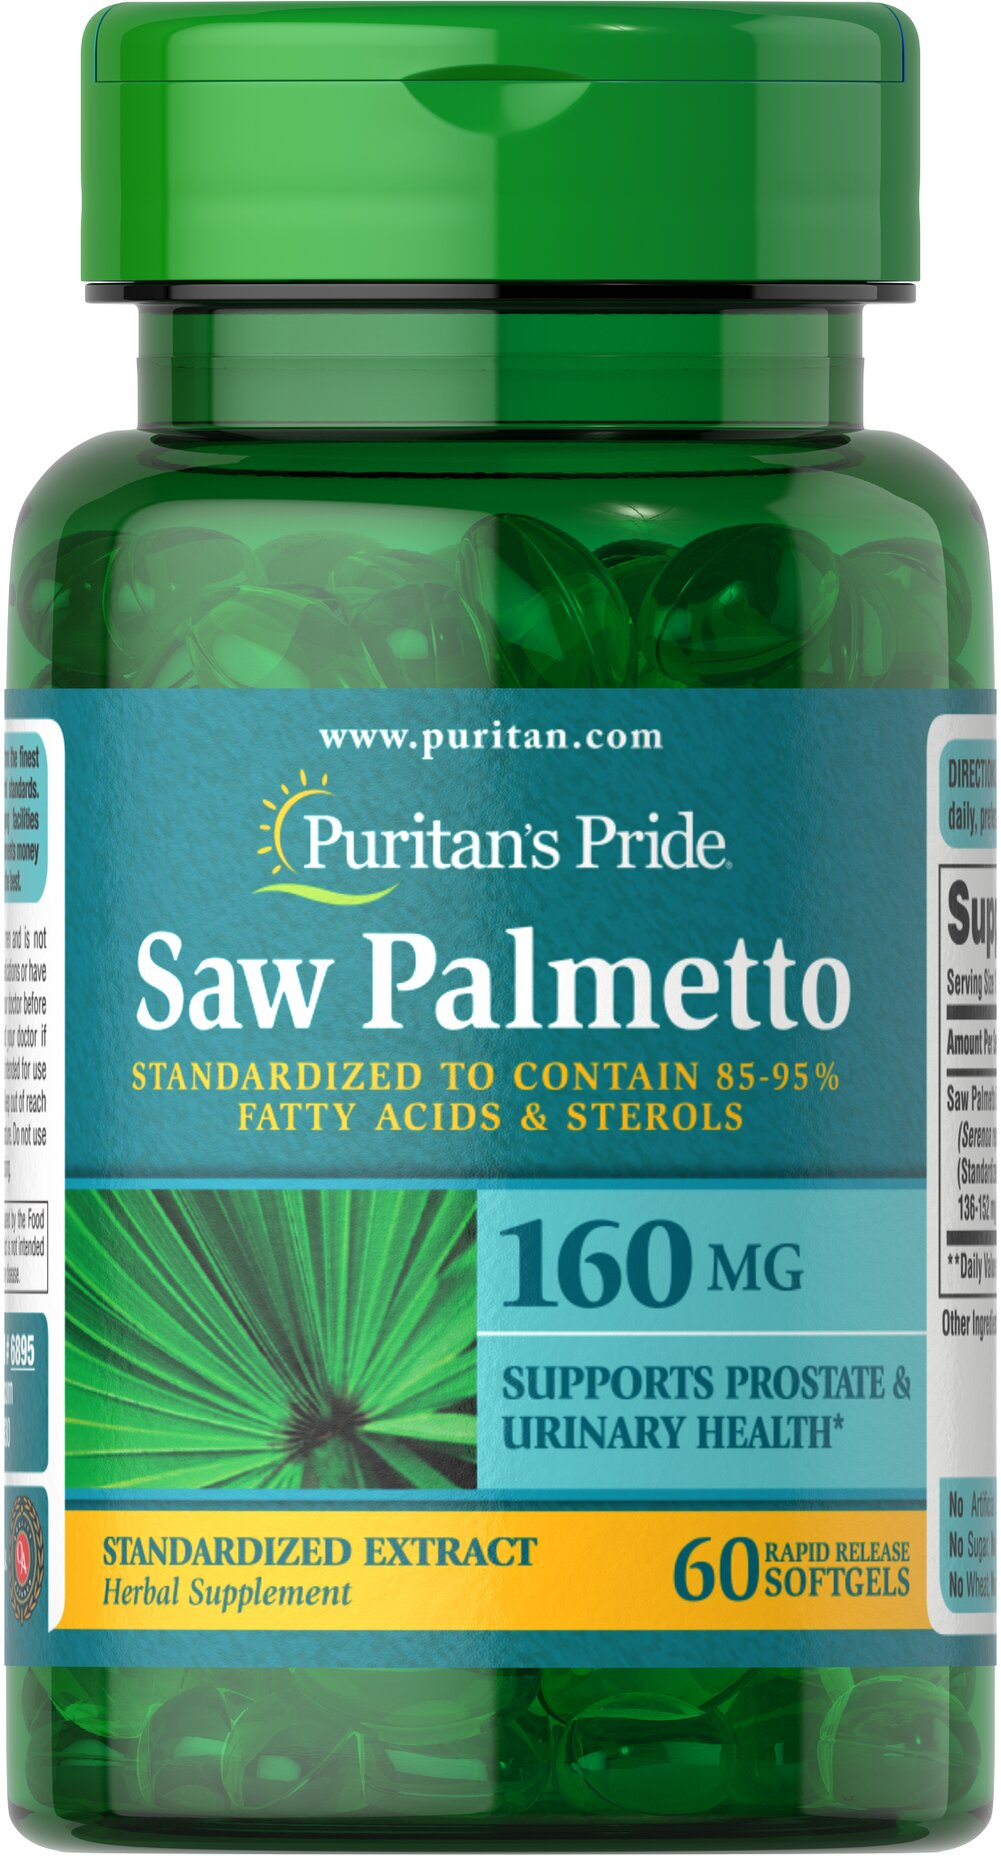 Saw Palmetto Standardized Extract 160 mg <p>Men the world over are discovering the beneficial properties of Saw Palmetto. Saw Palmetto contains phytochemicals, which support prostate health and urinary health.**</p><p>Our Saw Palmetto formula is fully assayed and standardized to ensure that each softgel contains 85-95% fatty acids and active sterols, which guarantees bioactivity.**</p> 60 Softgels 160 mg $10.99